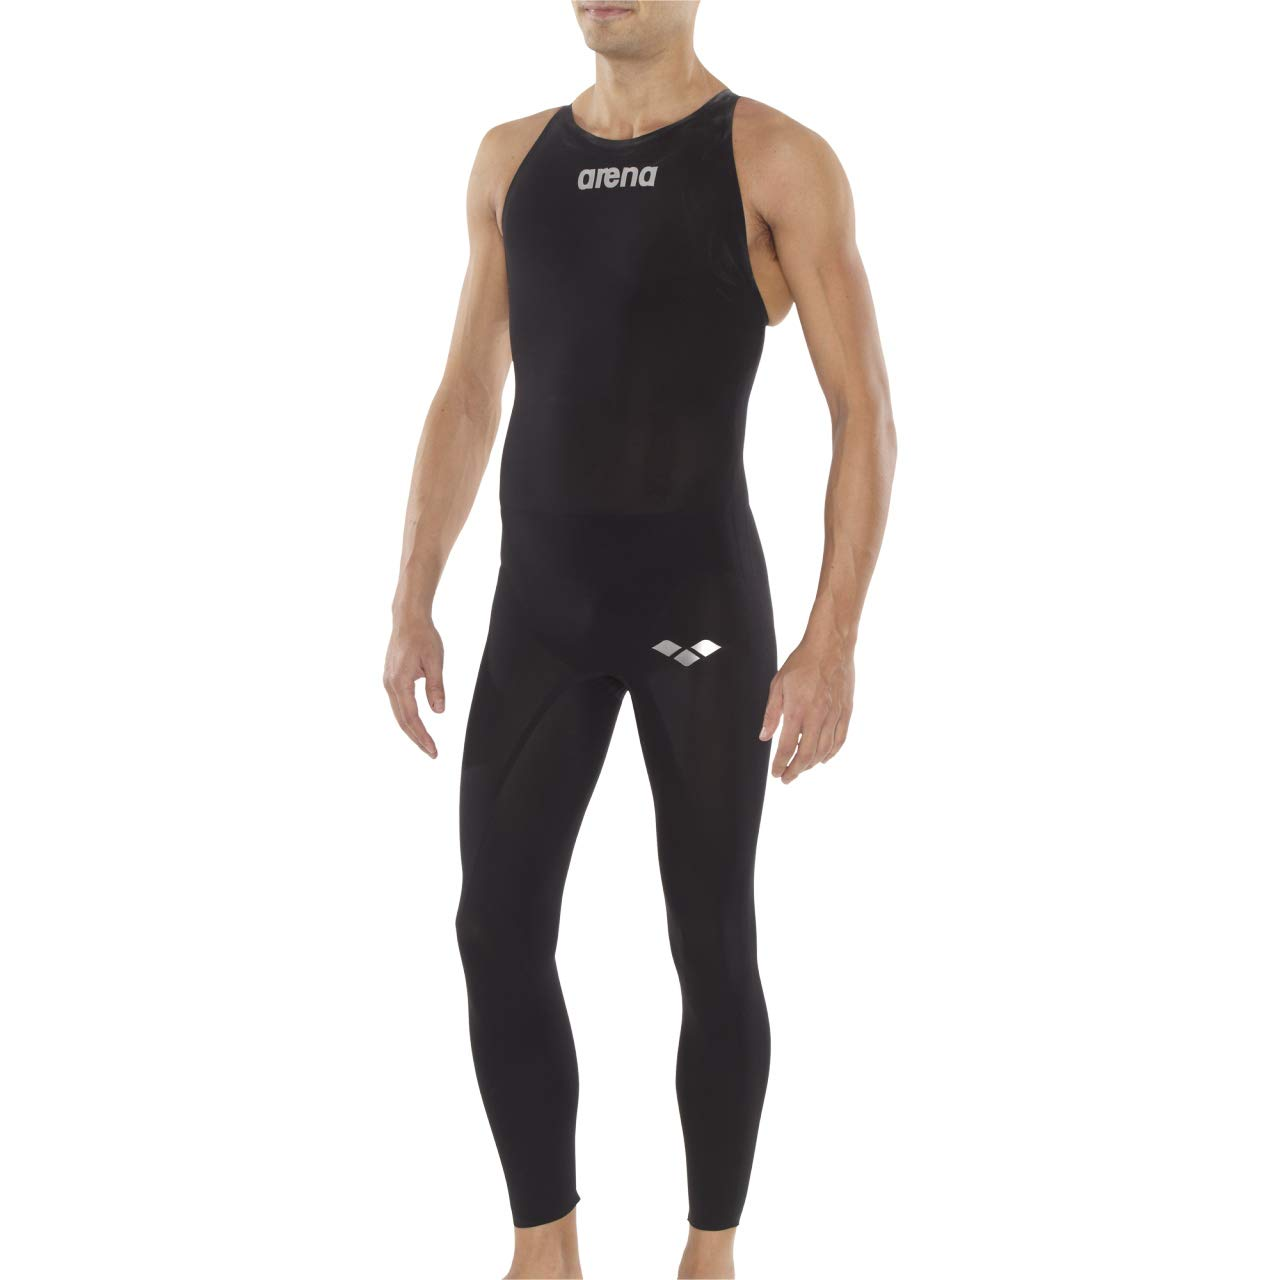 arena Powerskin R-Evo+ Open Water Closed Back Men's Racing Swimsuit, Black, 26